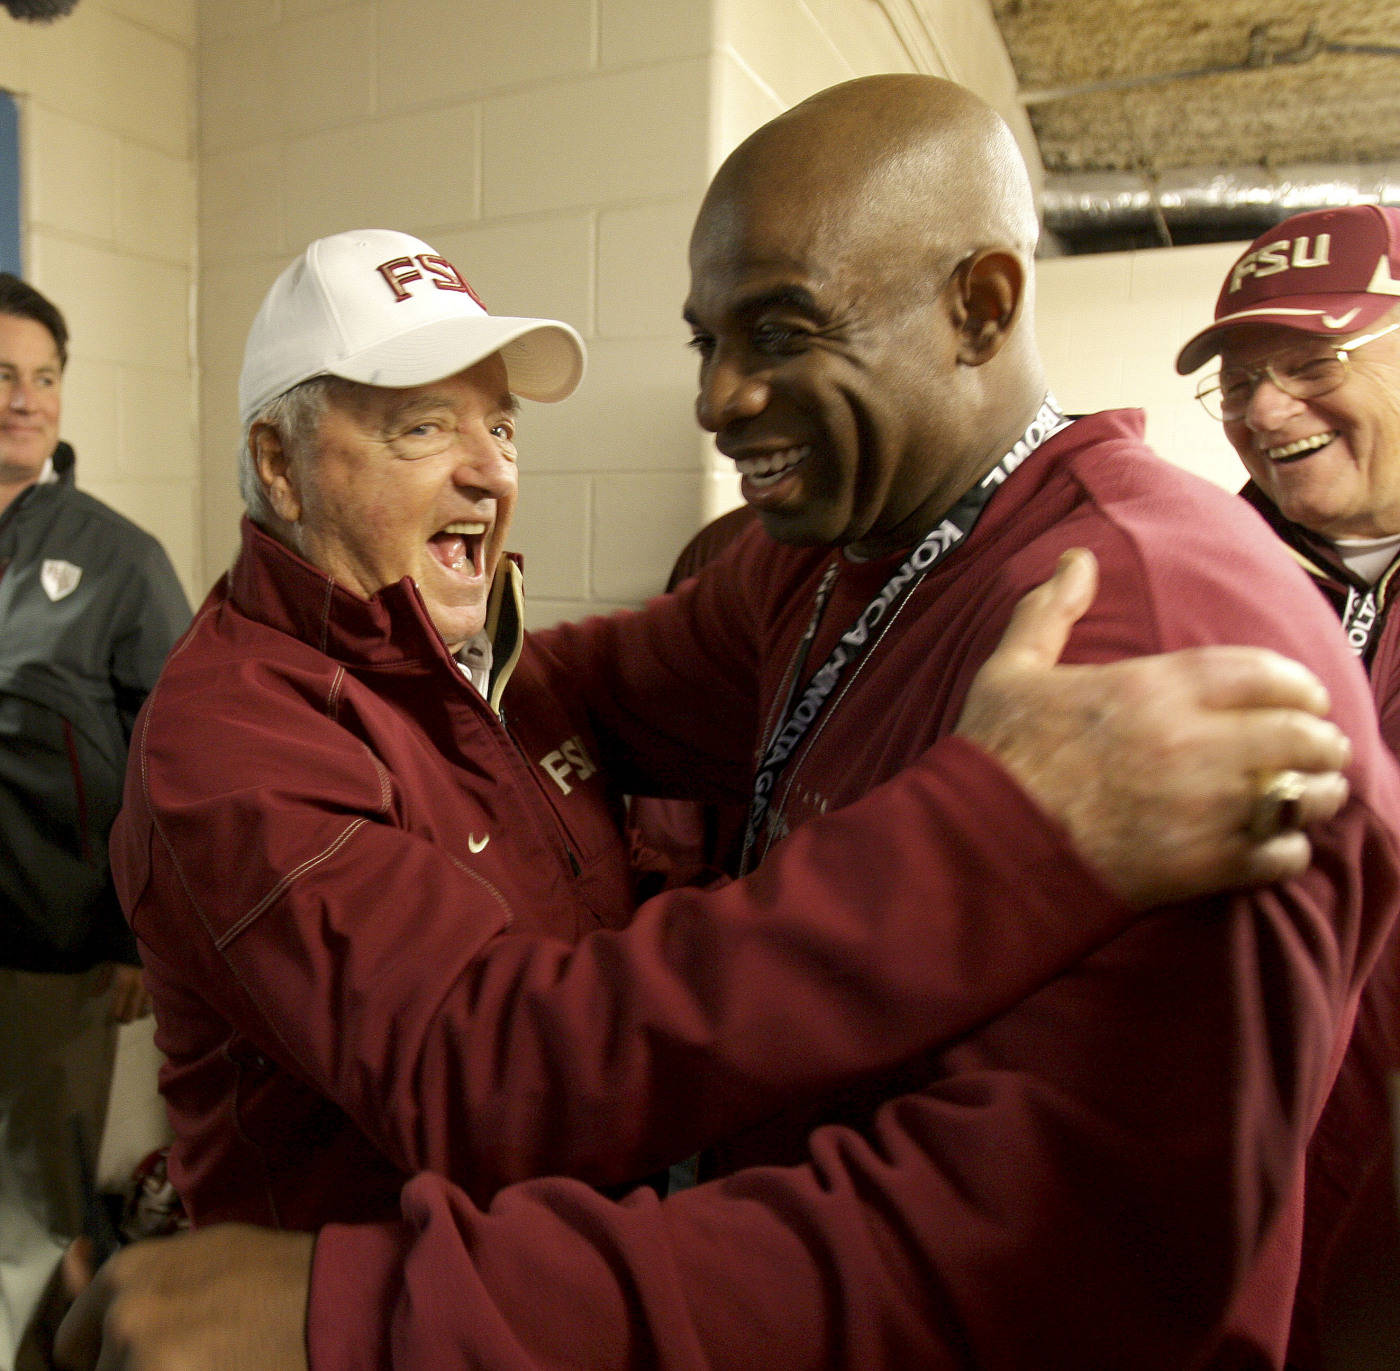 Florida State head coach Bobby Bowden, left, visits with former Seminole football player Deion Sanders in the locker room prior to the Gator Bowl NCAA college football game against West Virginia,  Friday, Jan. 1, 2010, in Jacksonville, Fla. (AP Photo/Phil Coale)